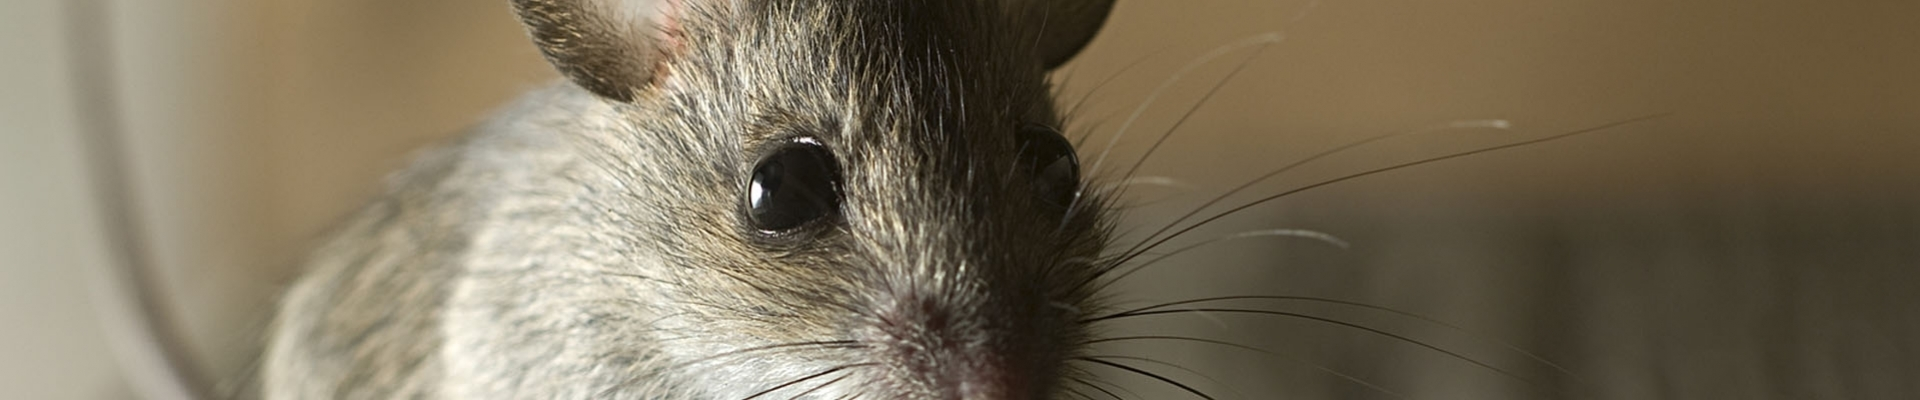 Mouse and Rat Control in Berkshire